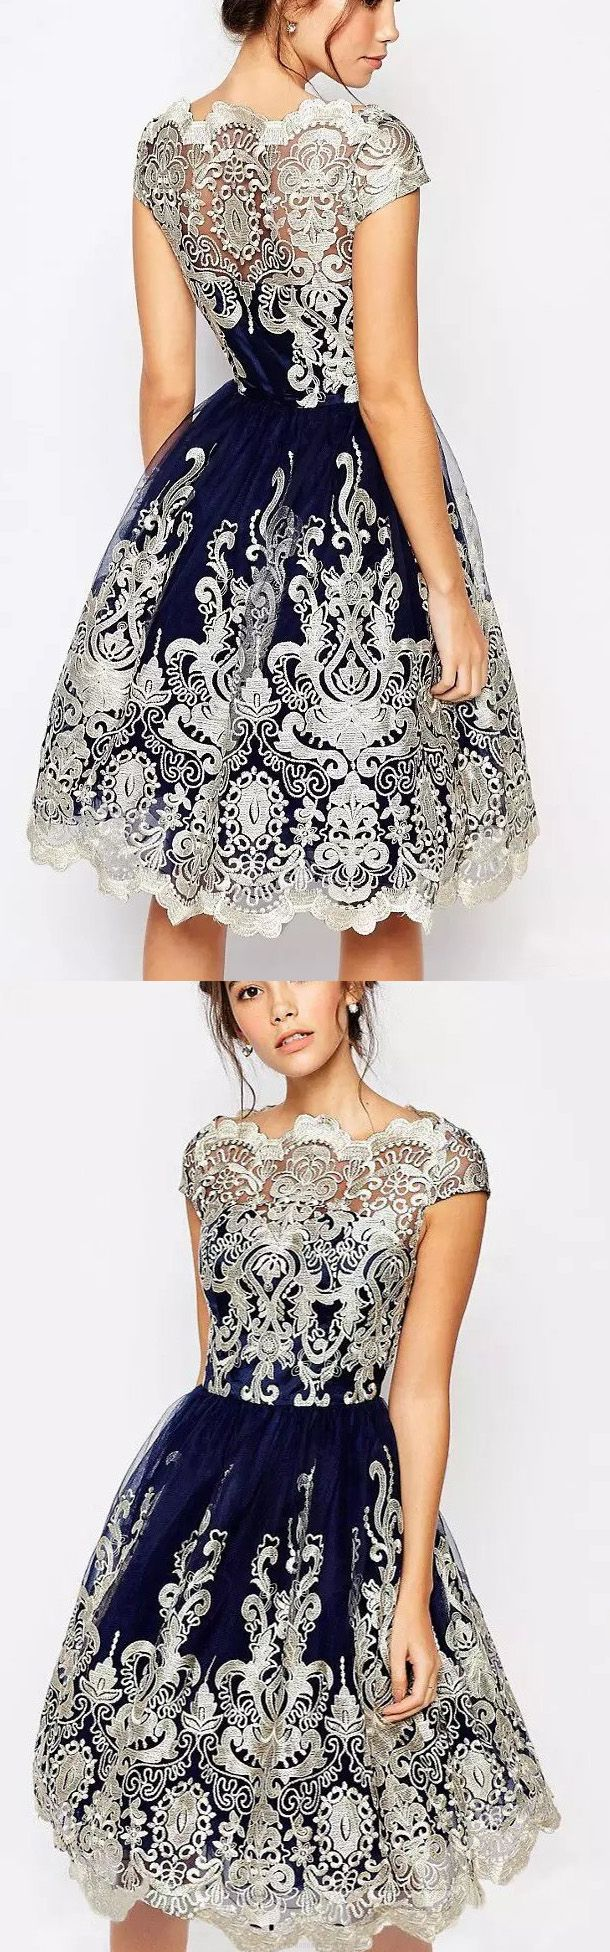 African white lace dress styles  Knee length Homecoming Dresses Navy Kneelength Homecoming Dresses